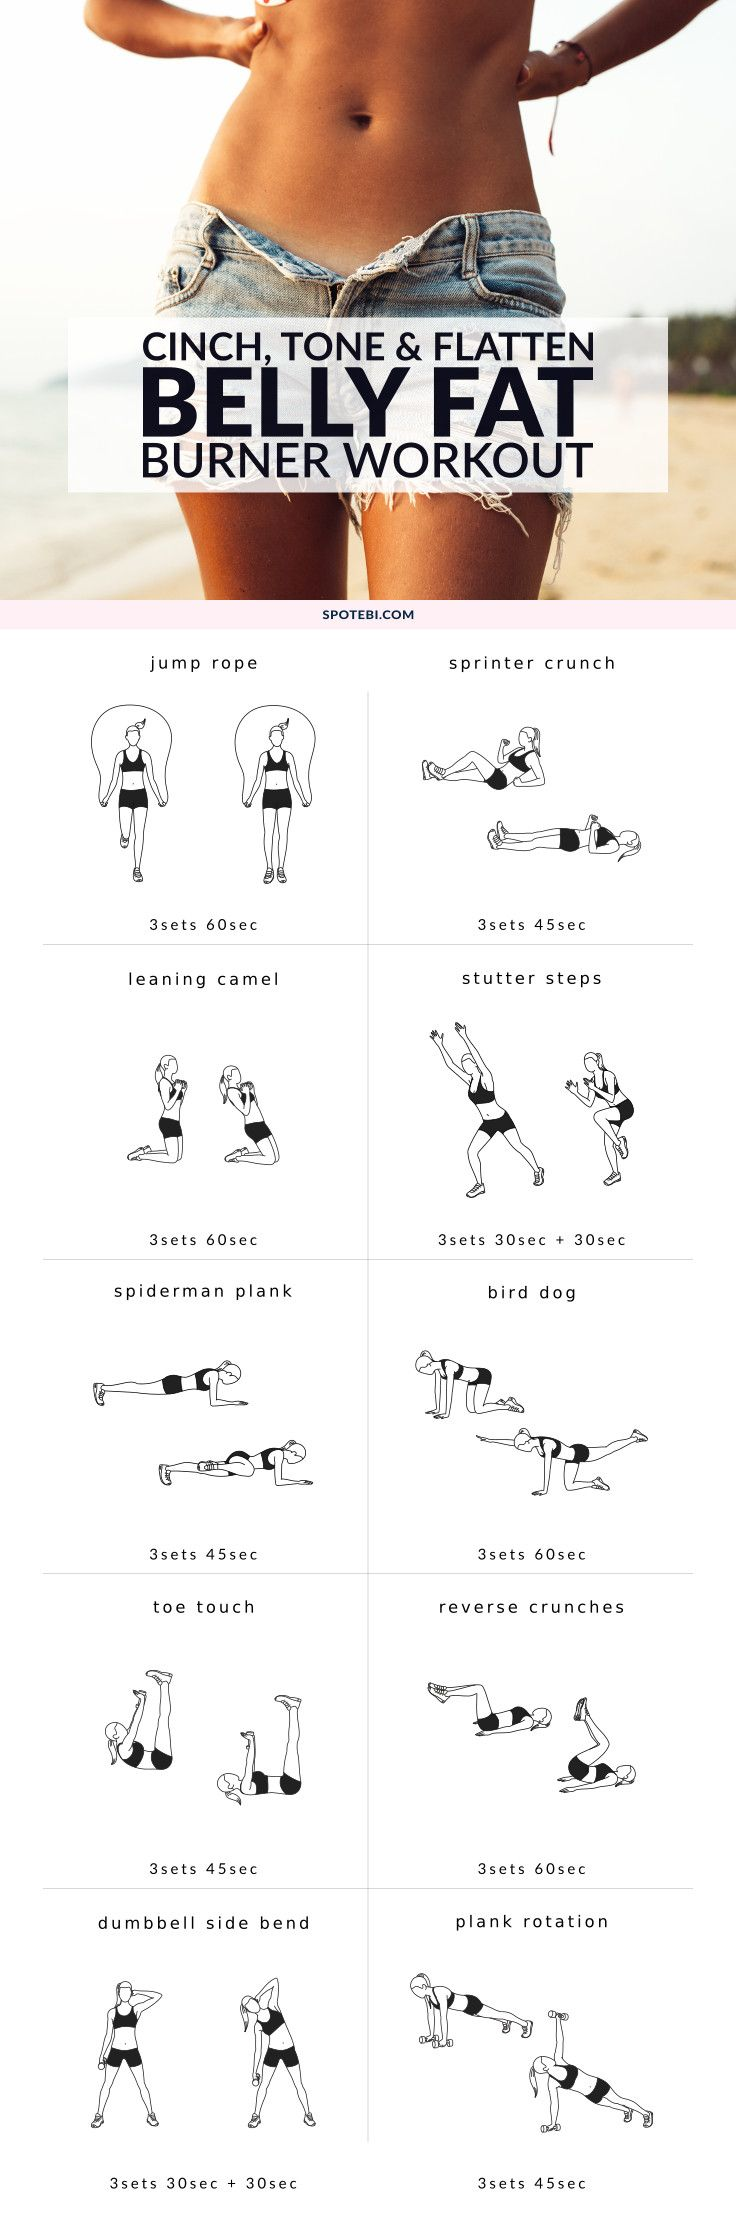 Most effective fat burning workout routine